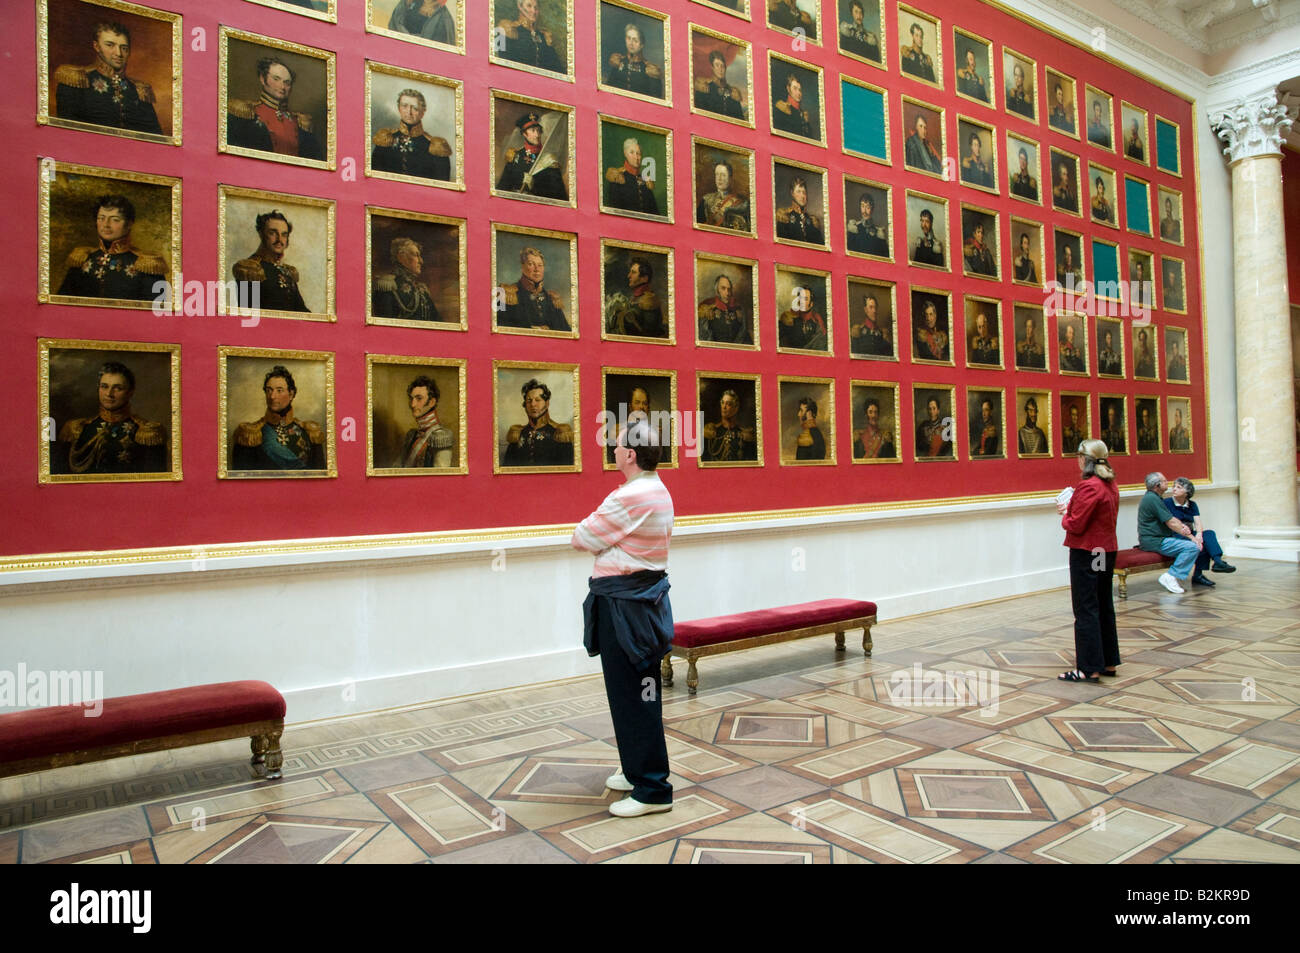 Rows of military portraits in the Winter Palace of the State Hermitage Museum, St Petersburg, Russia - Stock Image